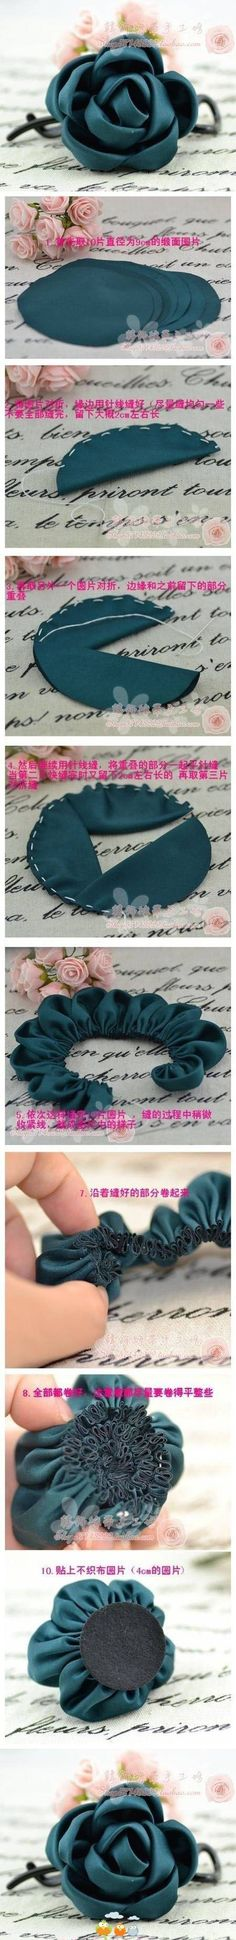 DIY Fabric Rose | | Keywords: diy, crafts, fabric rose, tutorial, how to